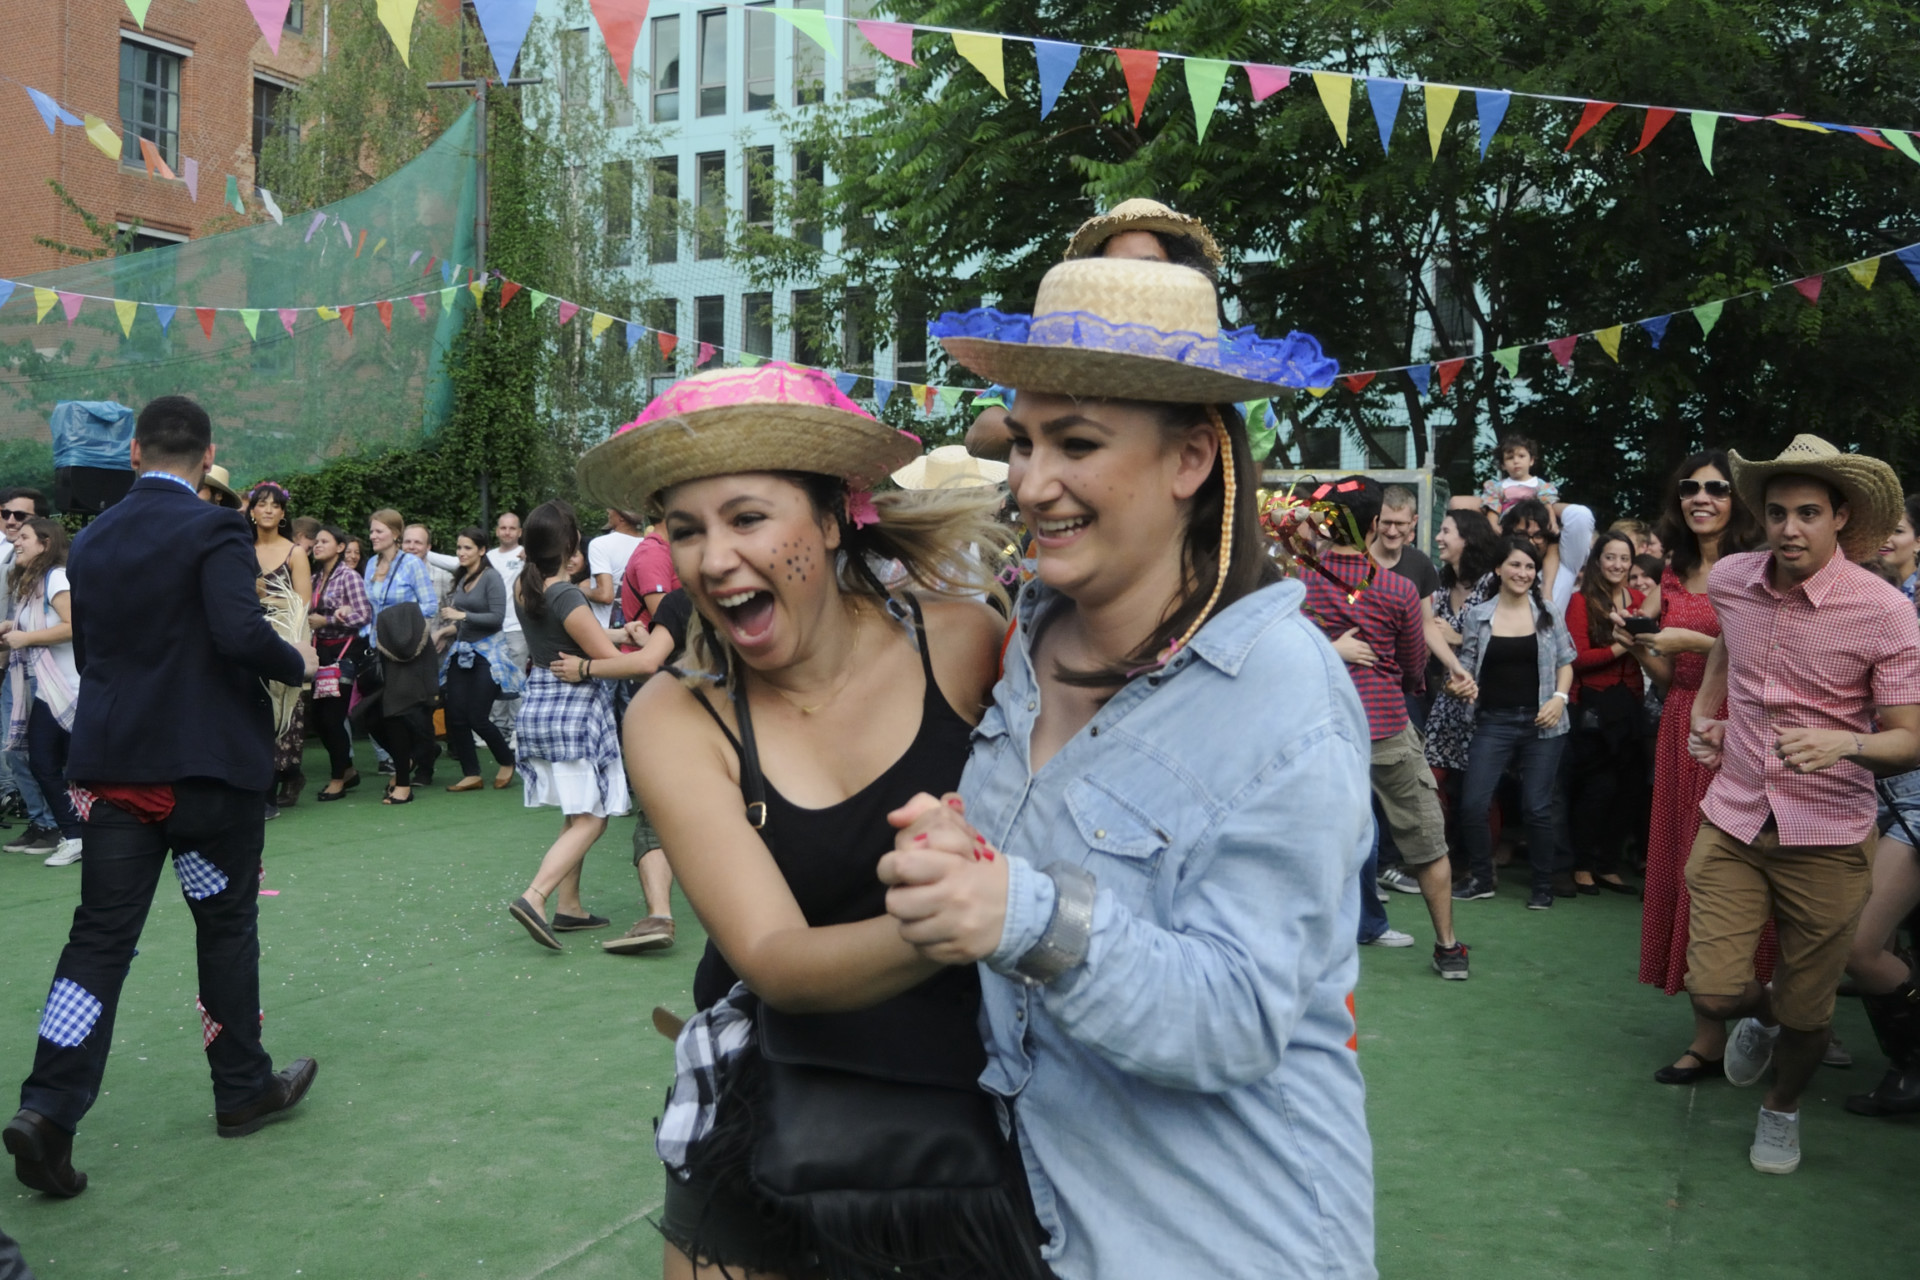 Festa Junina Internacional Festa Junina London // Brazil's Largest Community Festival